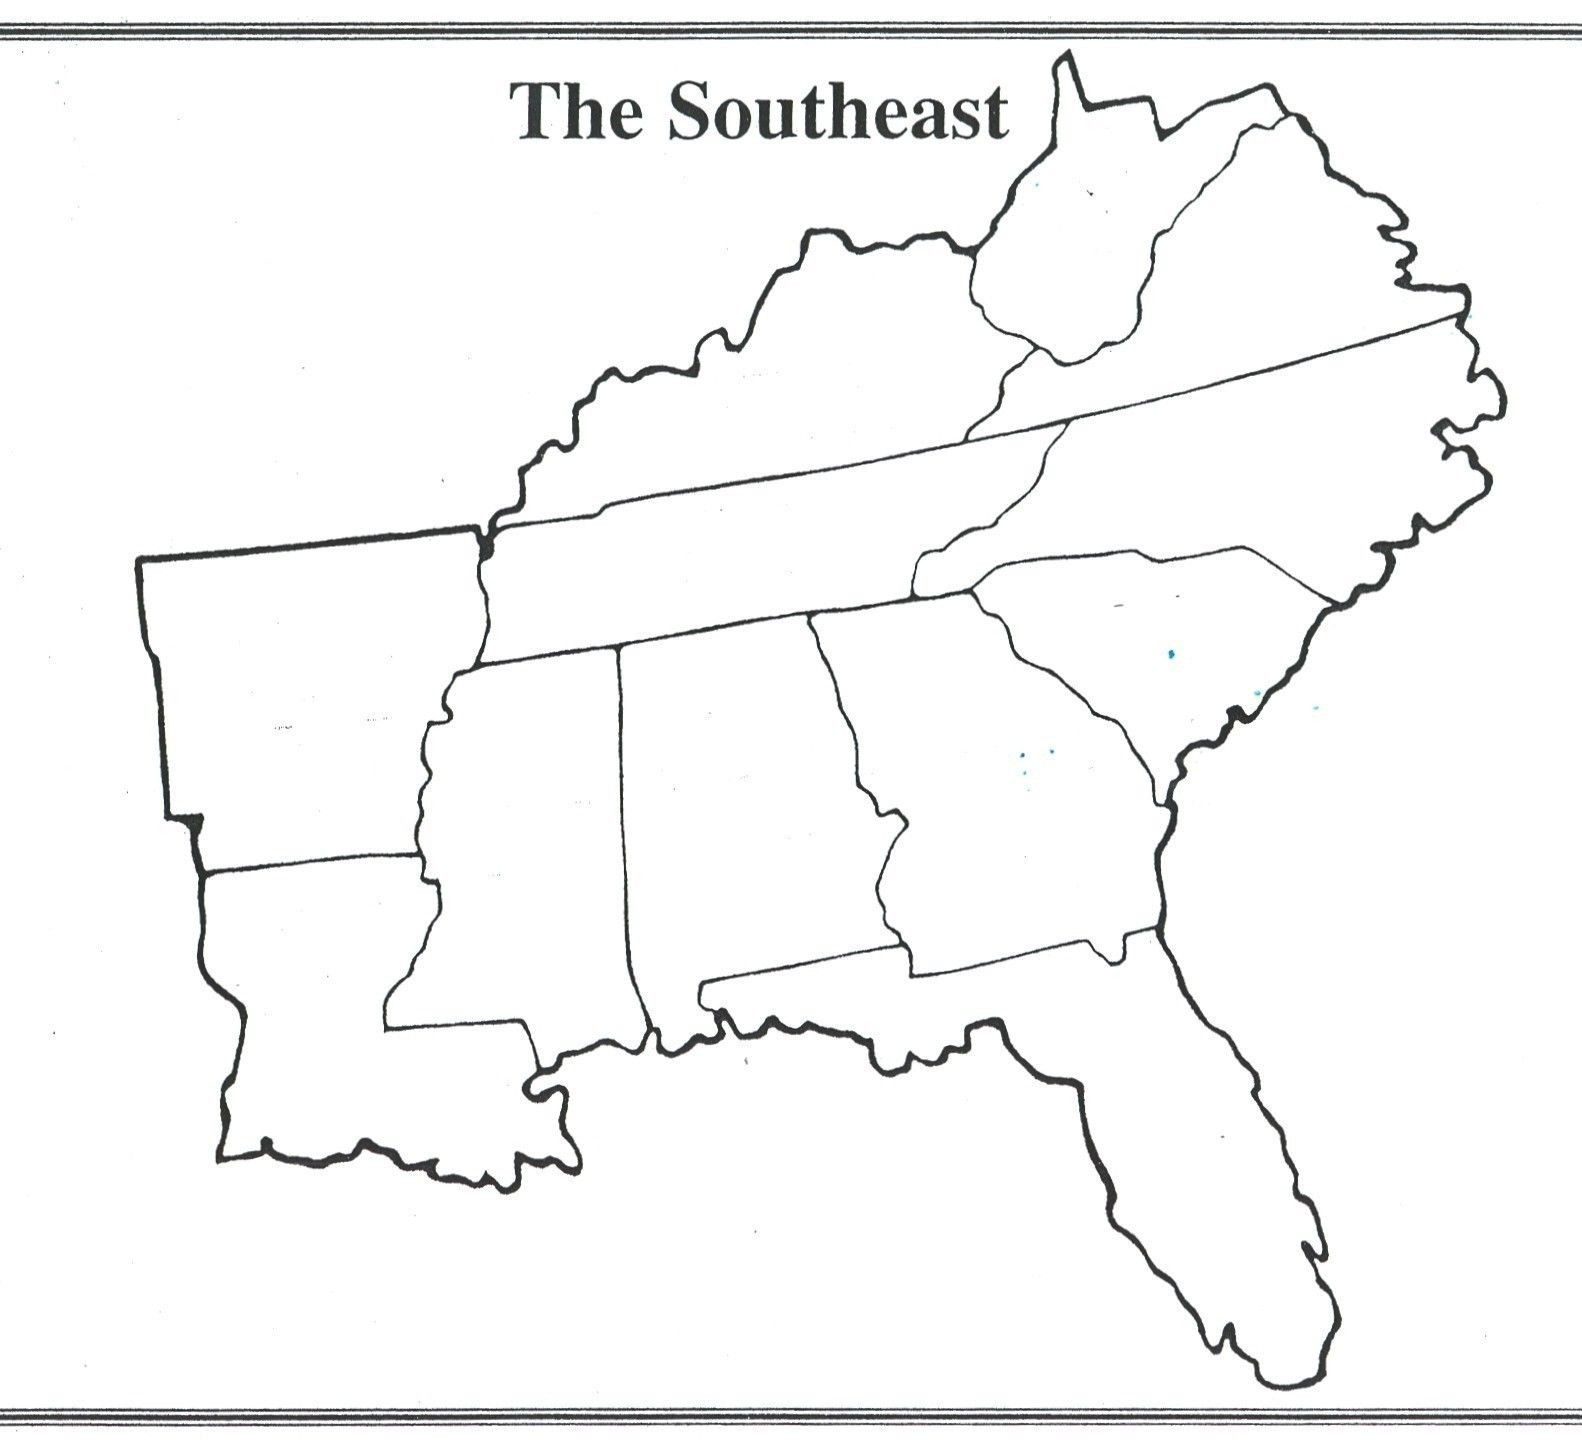 Blank Us Map Quiz Printable Interesting Blank Us Map Quiz Printable south Eastern States